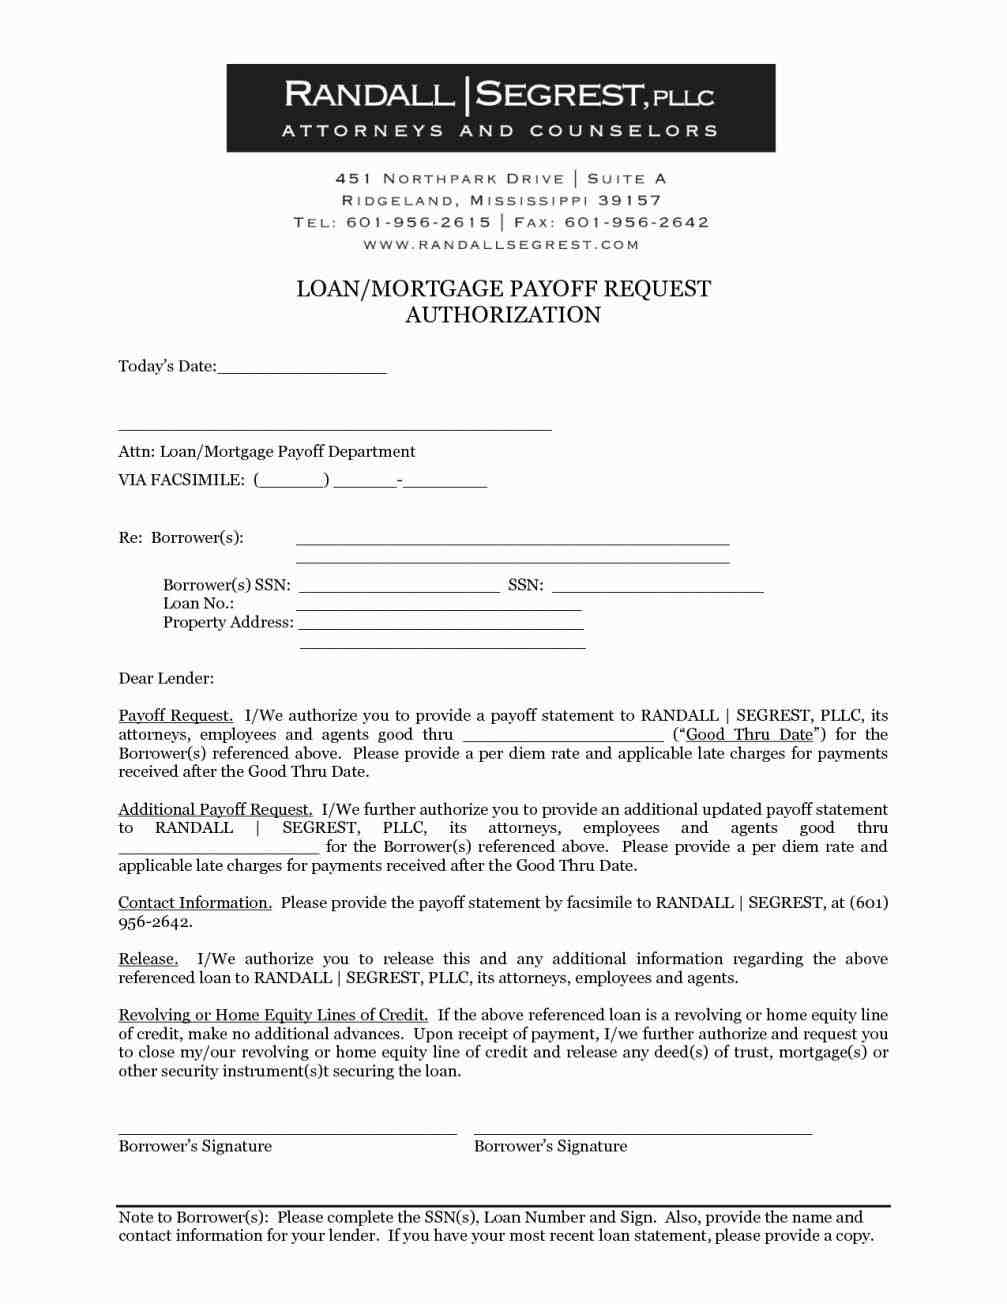 private mortgage payoff letter template example-beautiful payoff what payoff letter template does a cover letter consist of beautiful payoff settlement offer 5-k